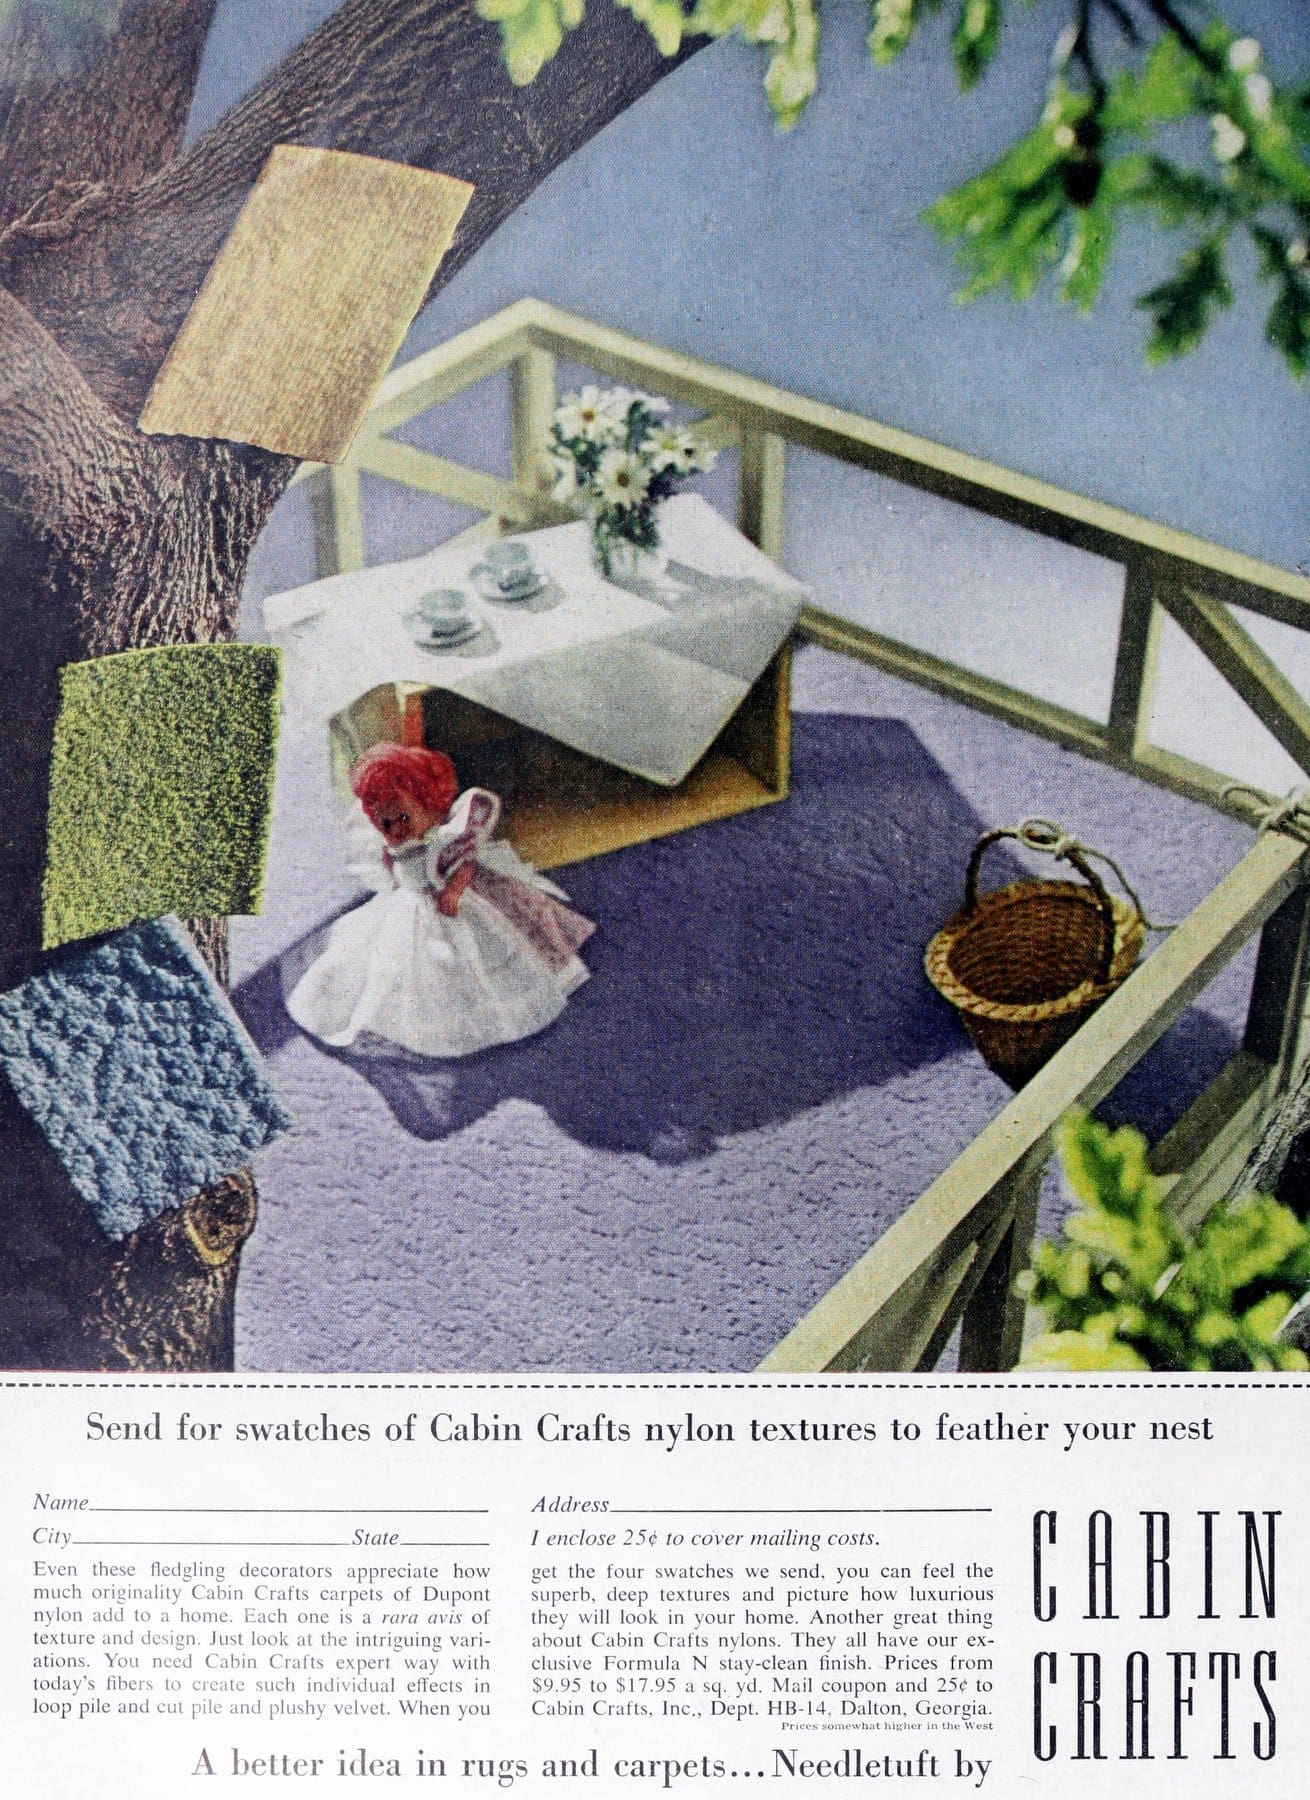 Vintage Cabin Crafts sculpted and textured carpeting (1960)